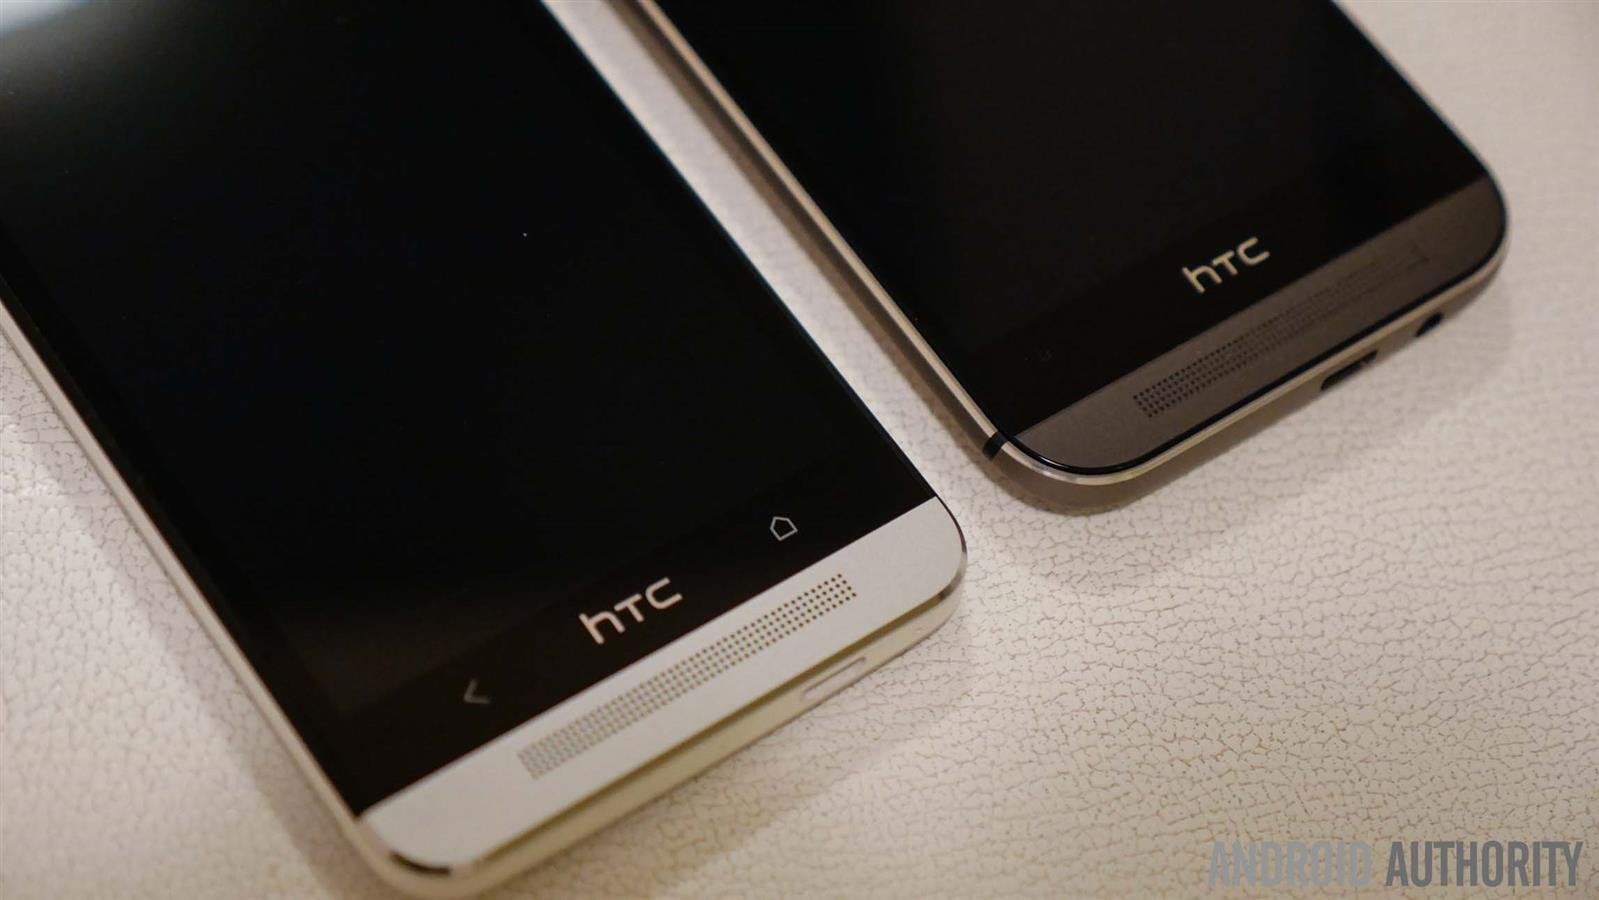 htc-one-m8-vs-htc-one-m7-quick-look-aa-5-of-191